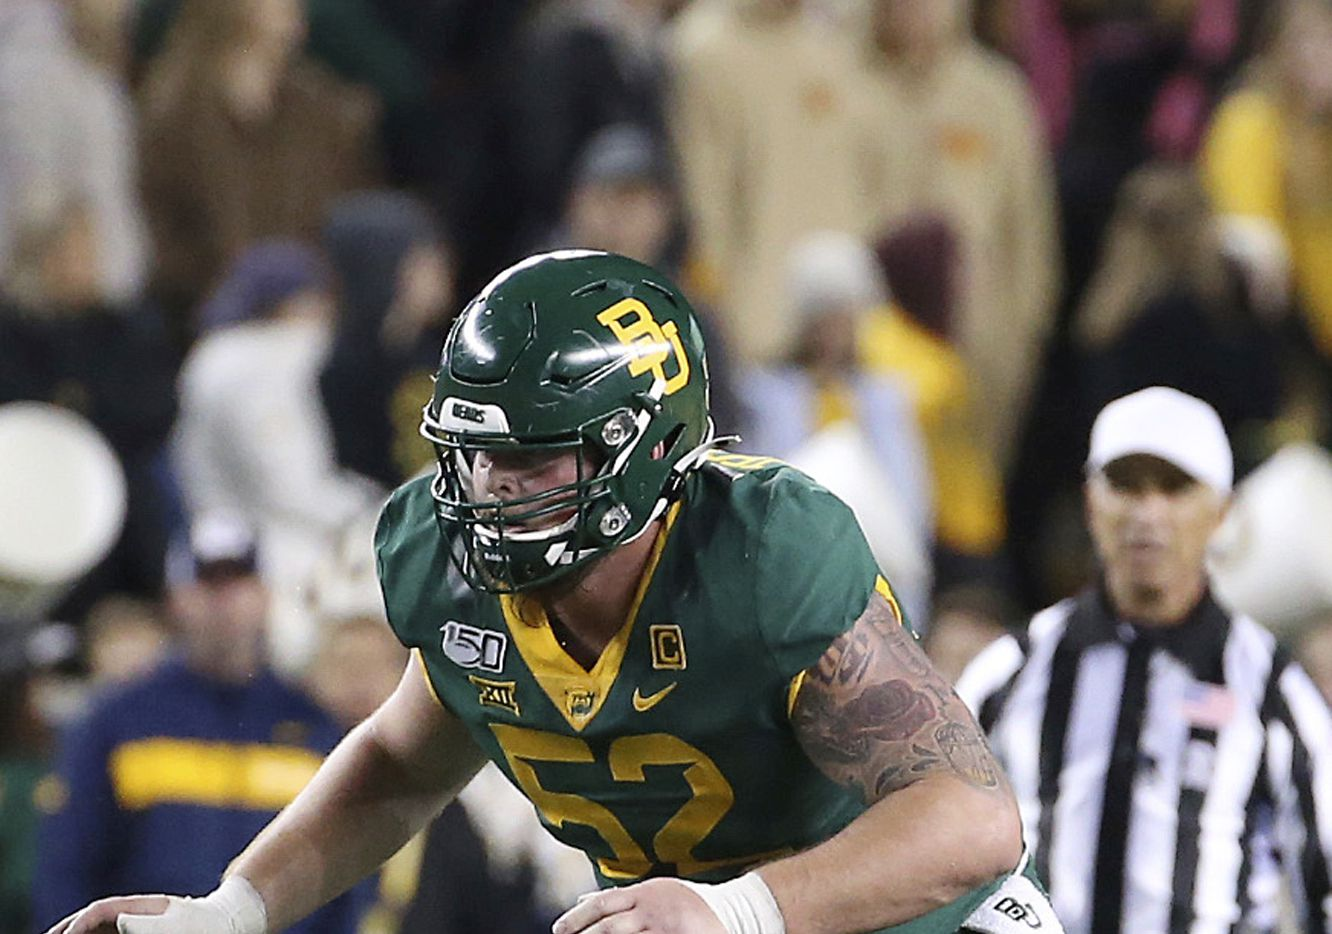 FILE - In this Oct. 31, 2019, file photo, Baylor offensive lineman Sam Tecklenburg (52) blocks during an NCAA college football game against West Virginia in Waco, Texas. Tecklenburg was selected to The Associated Press All-Big 12 Conference team, Friday, Dec. 13, 2019.